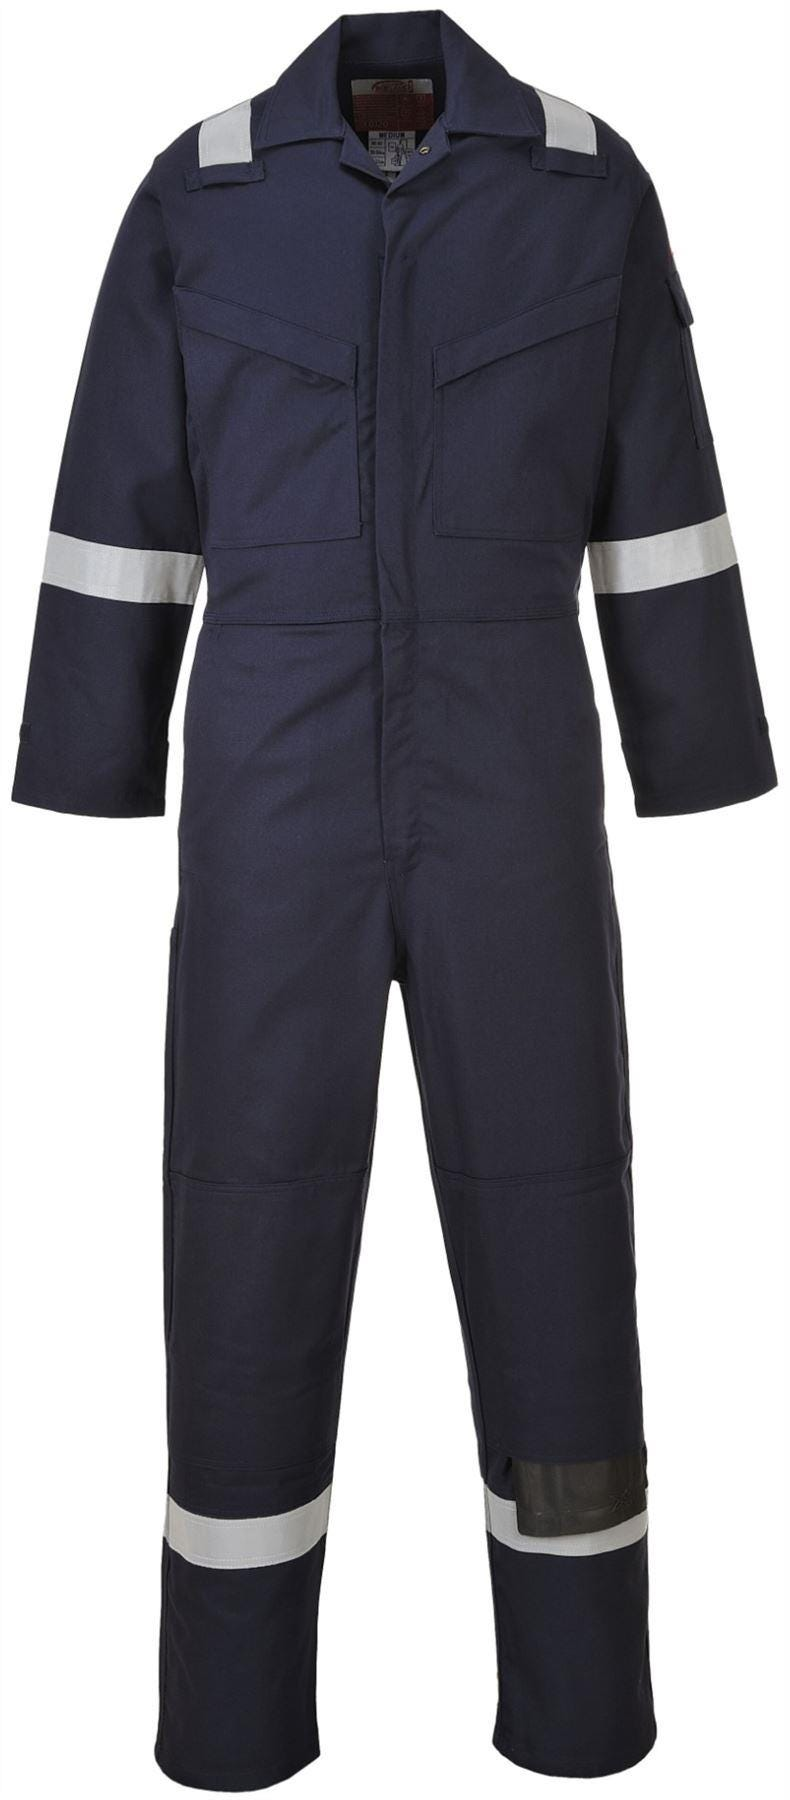 Portwest Flame Resistant Anti-Static Overall - Navy 5XL